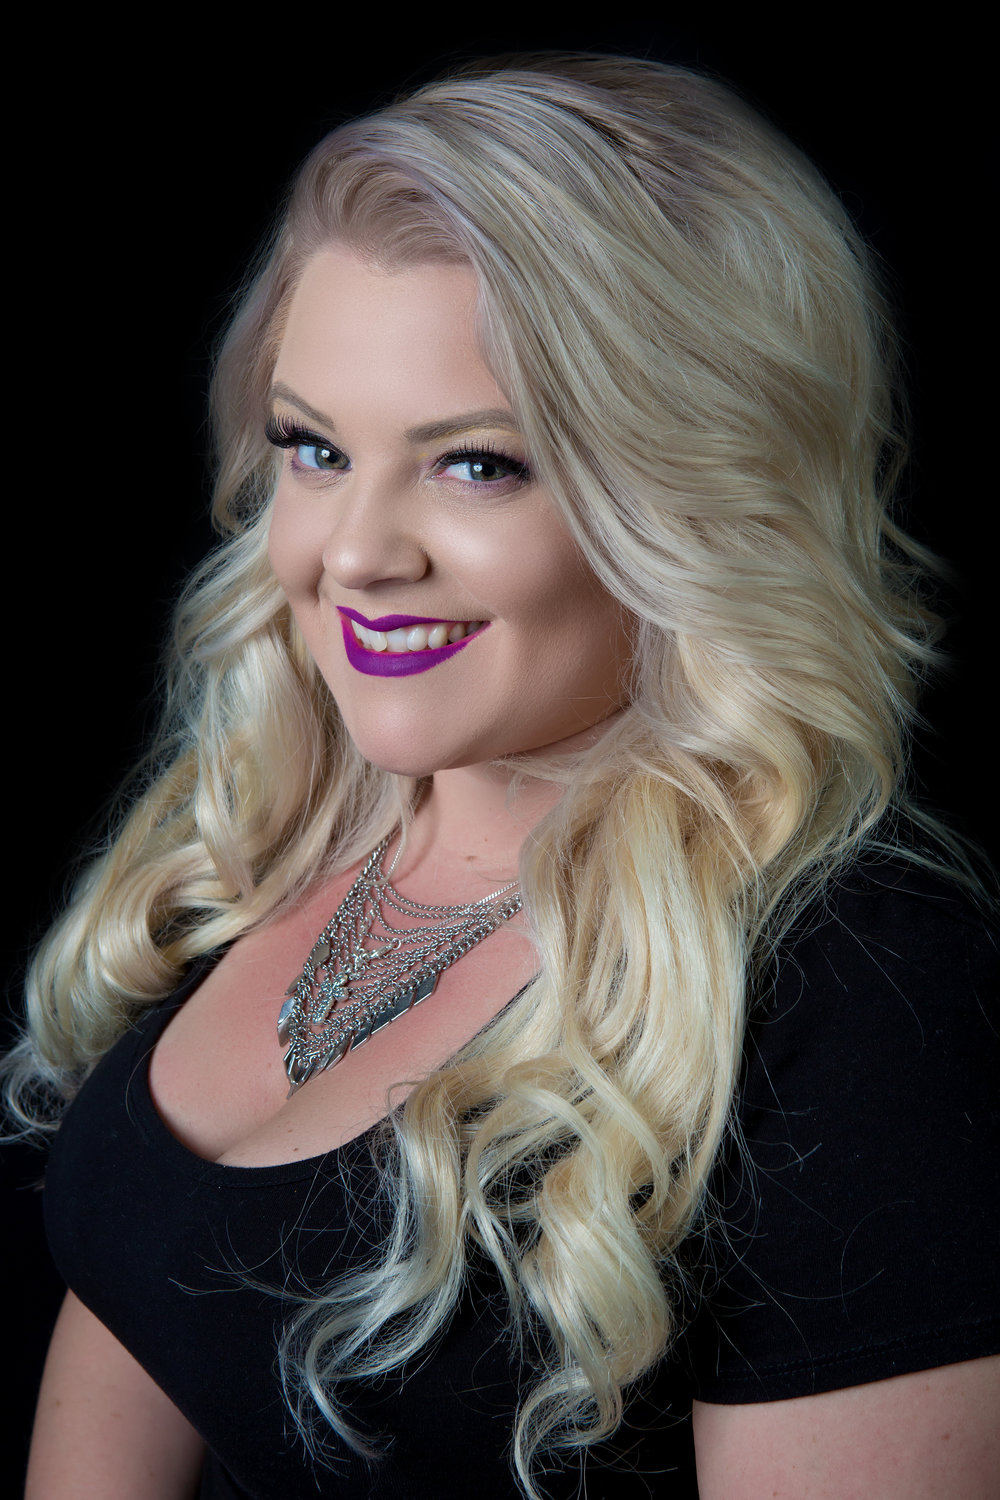 Nicole - Hi, I've been a stylist at Avant Garde Salon for nearly 7yrs.  I specialize in hair Extensions and color techniques. I also have hair available for clients that need Extensions. Hope to meet you soon!